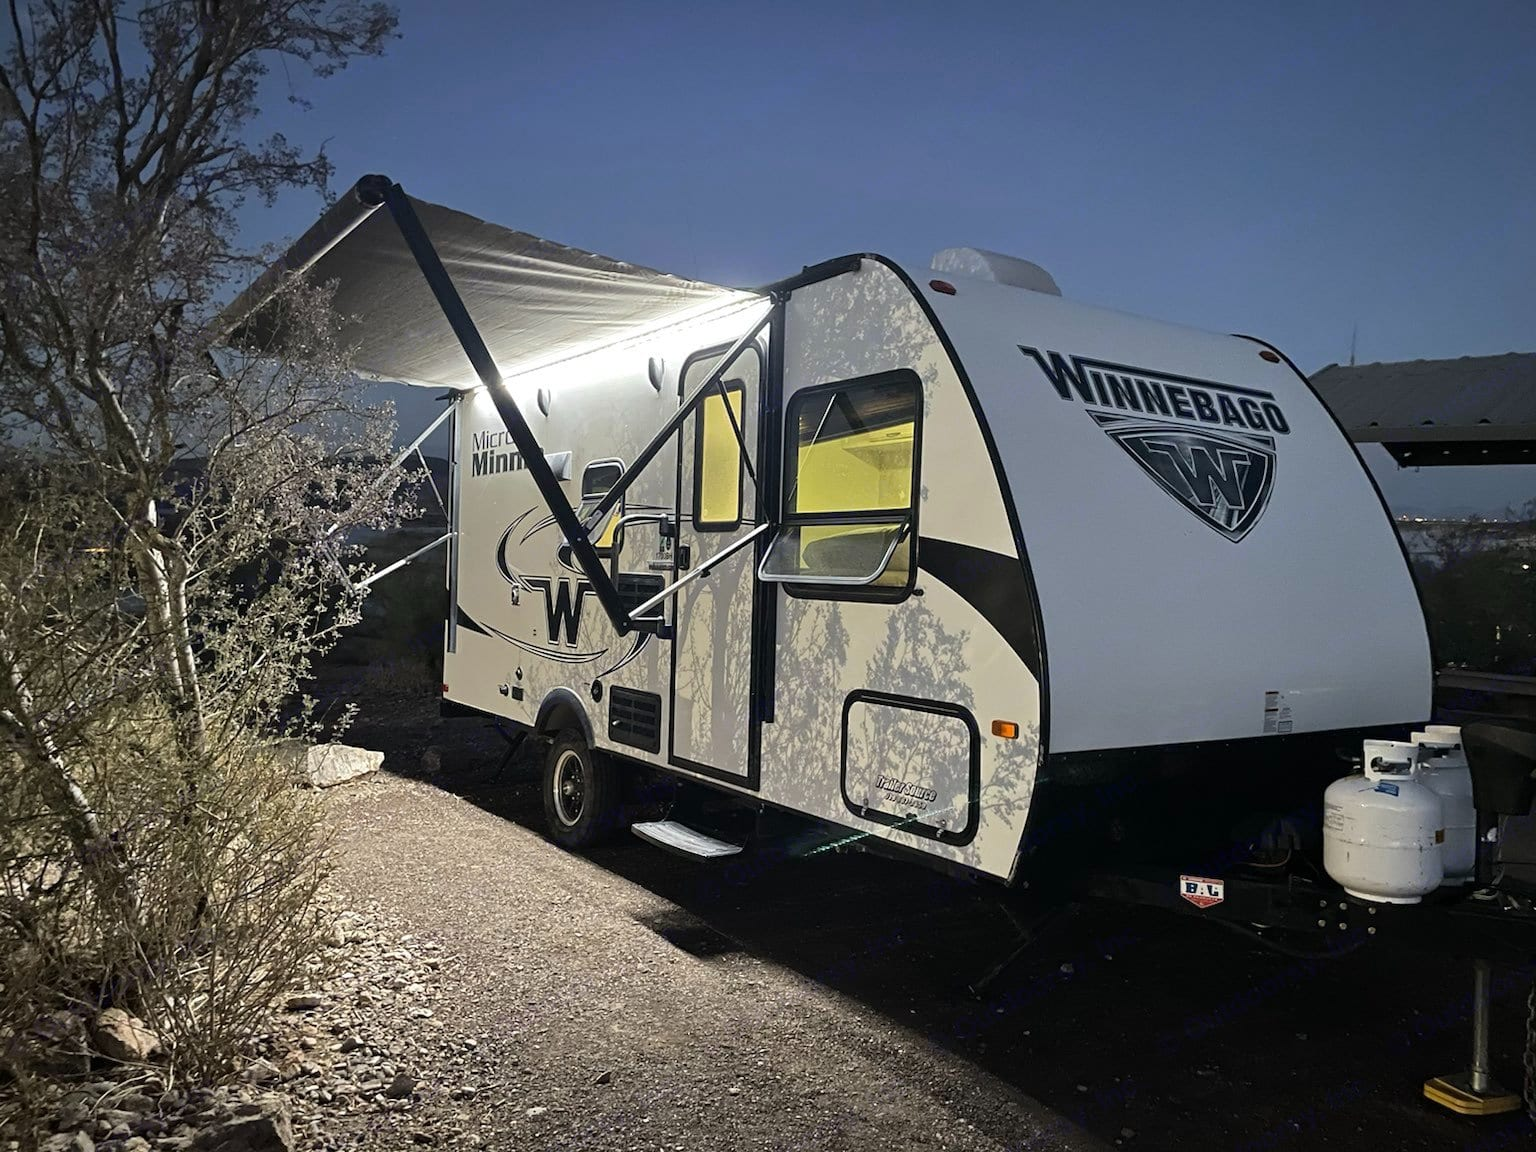 Equipped with an electric awning and outdoor lights. Winnebago Micro Minnie 2018